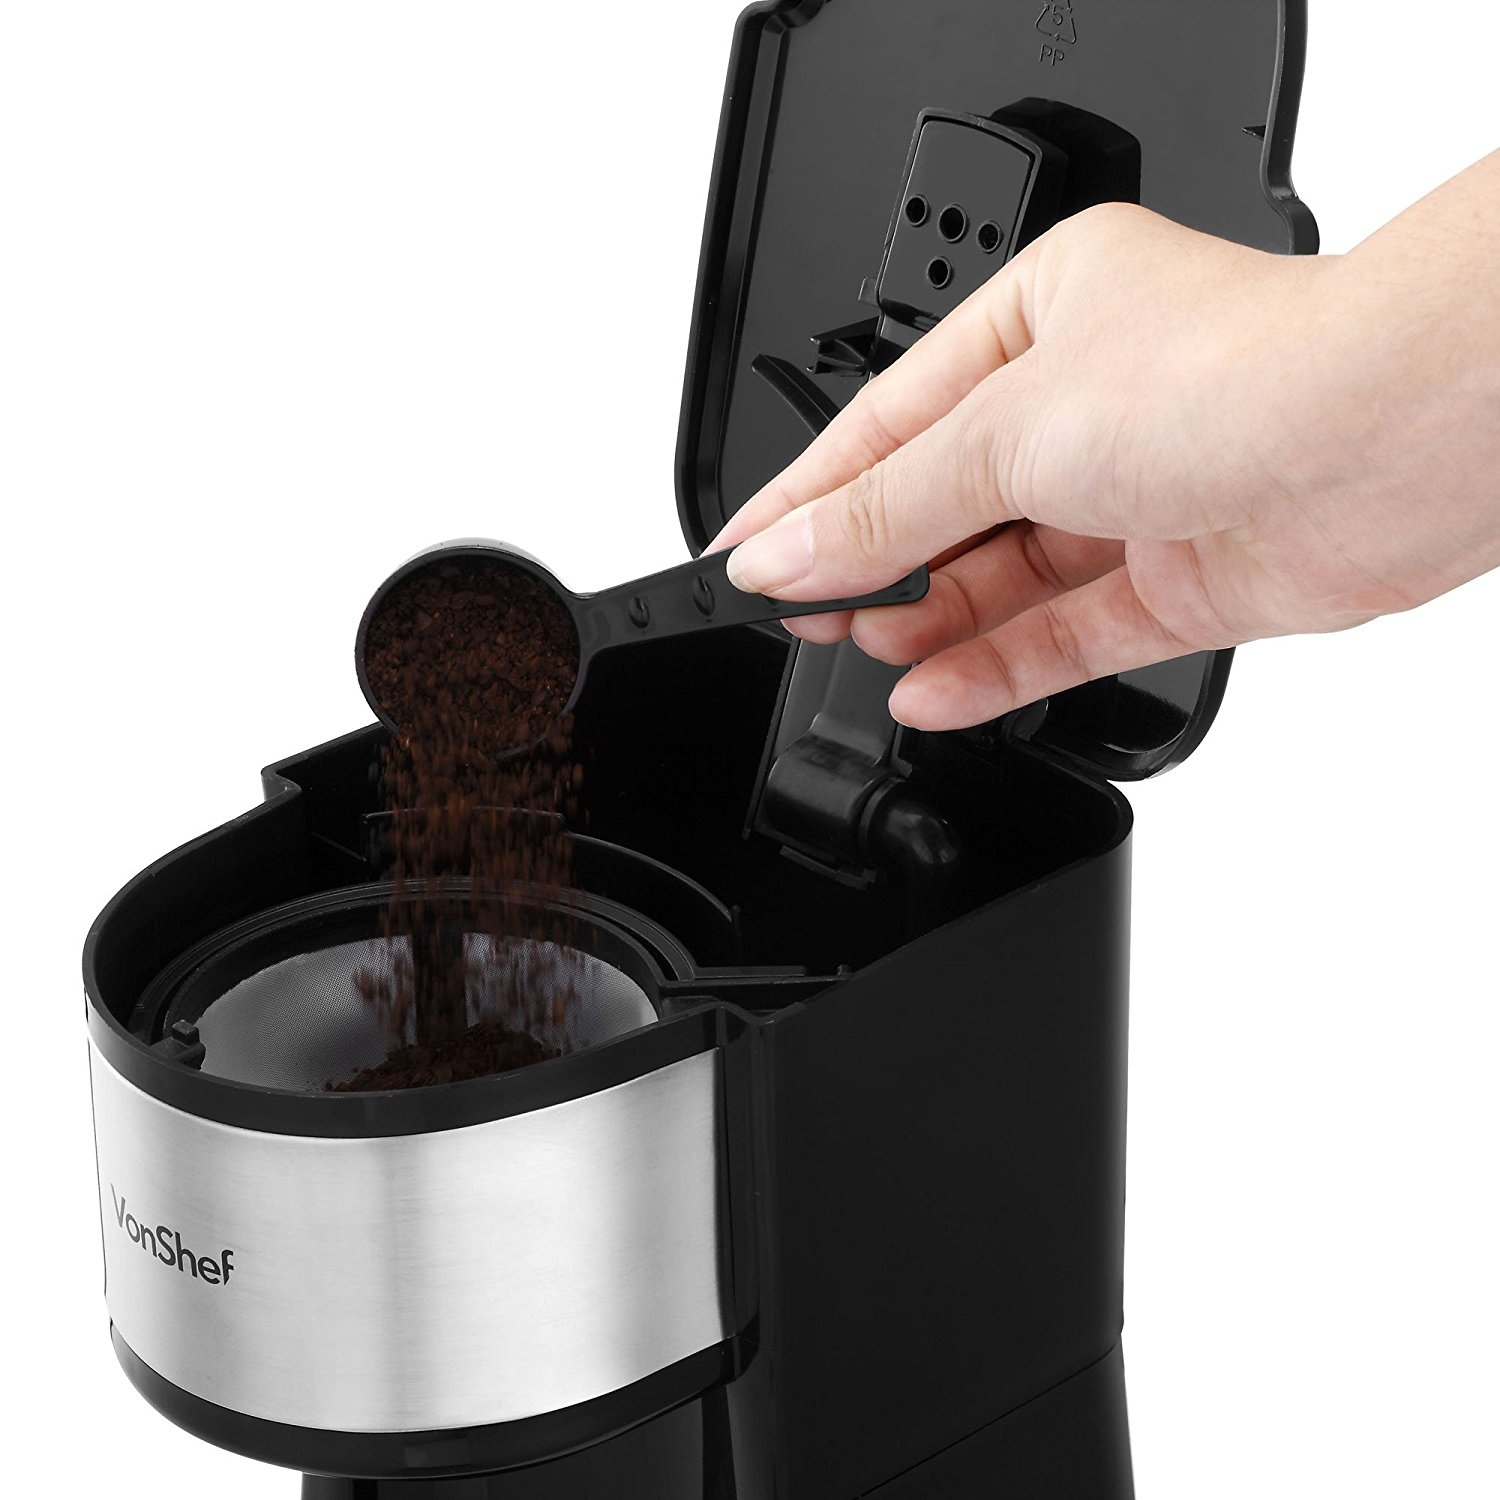 Single Cup Coffee Maker 220 Volt : Vonshef 13166 One-Cup Coffee Maker for 220 Volts